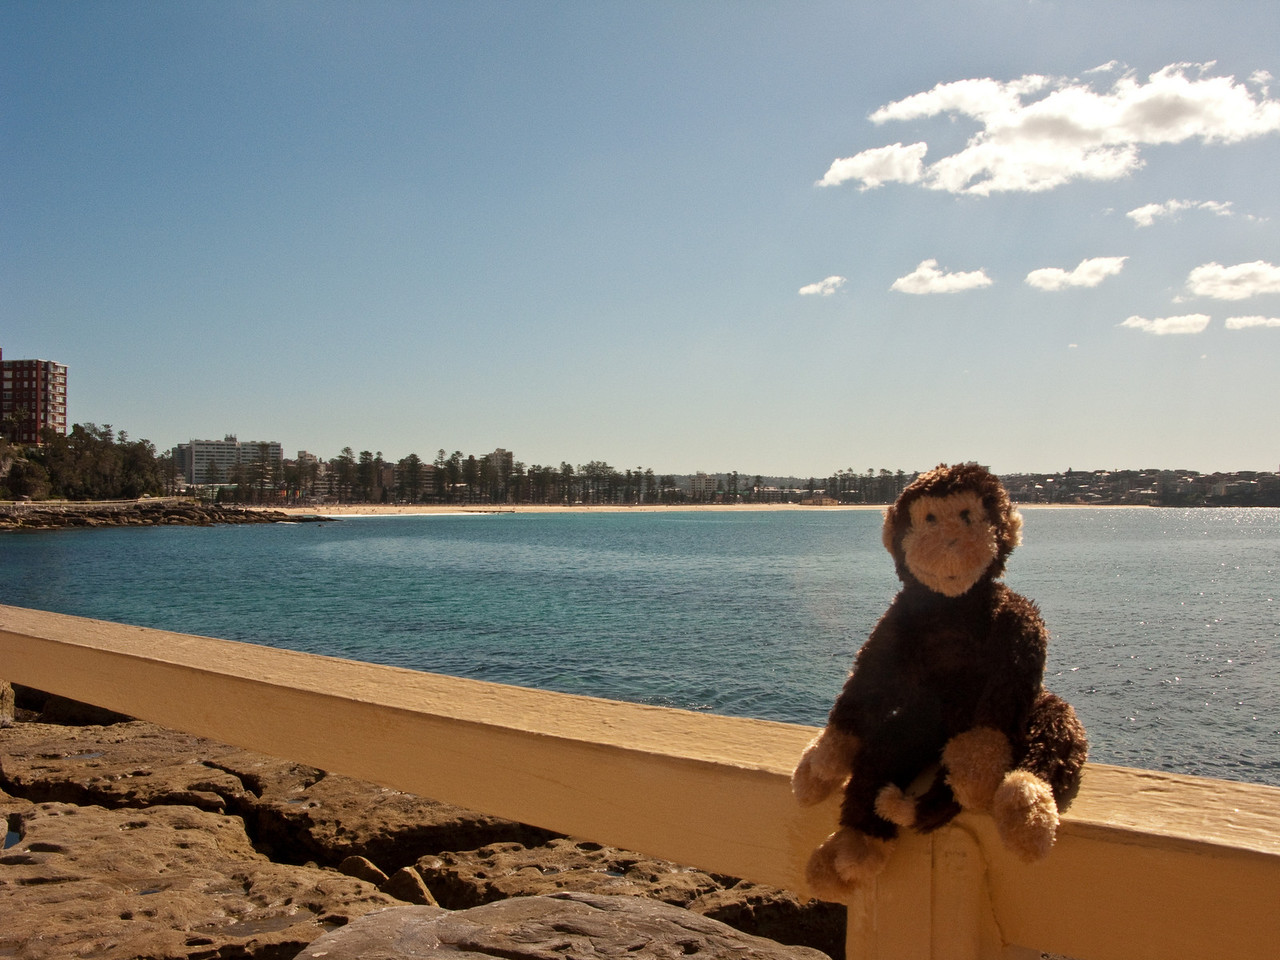 Coogee enjoying the sun with Manly Beach in the background.